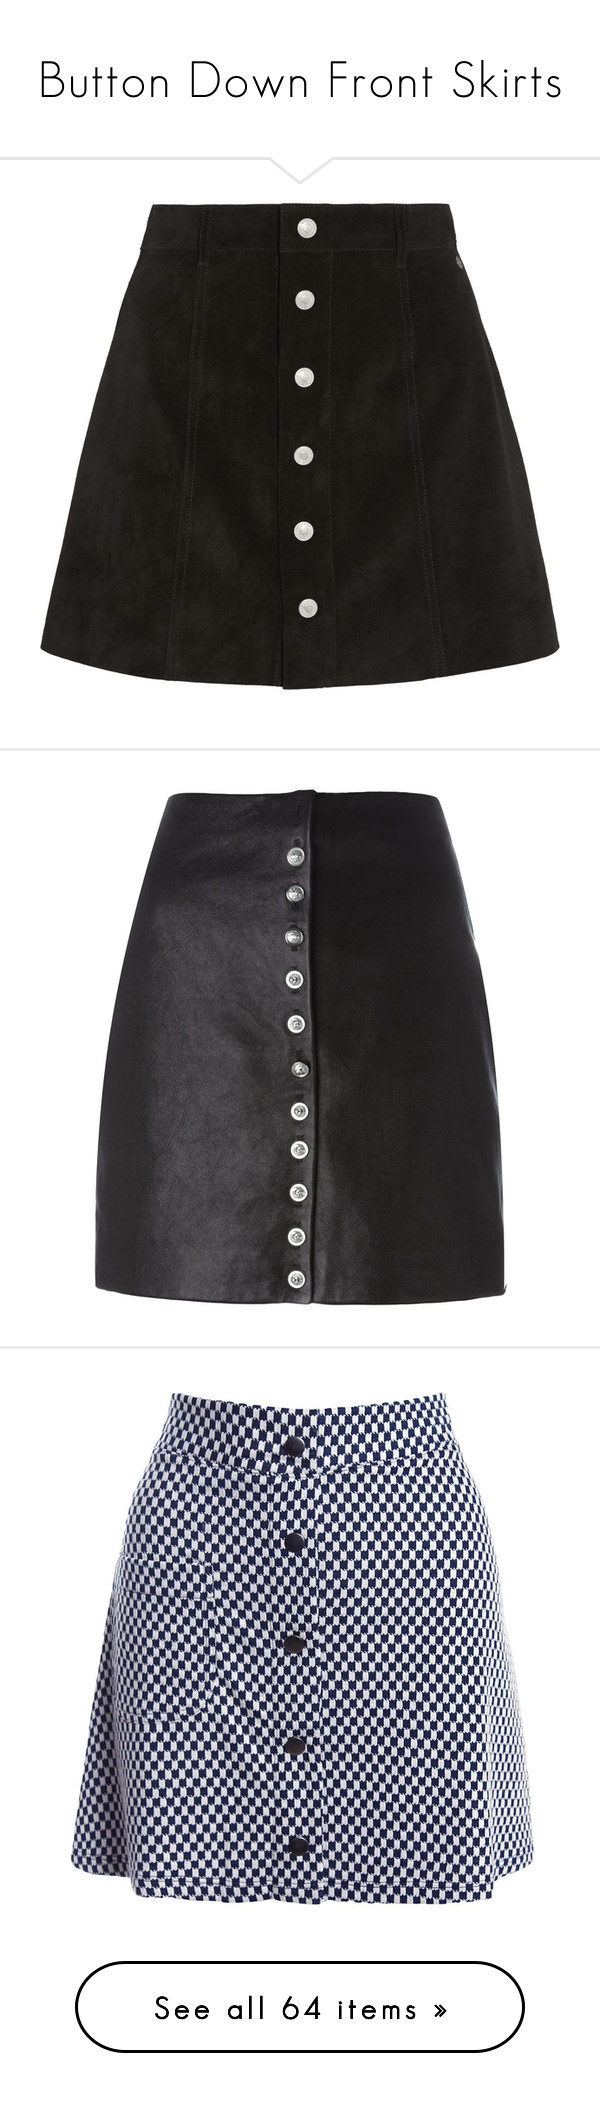 """""""Button Down Front Skirts"""" by luxleovirgo ❤ liked on Polyvore featuring skirts, mini skirts, bottoms, saias, black, button front mini skirt, ag adriano goldschmied, suede a line mini skirt, suede button front skirt and short a line skirt"""